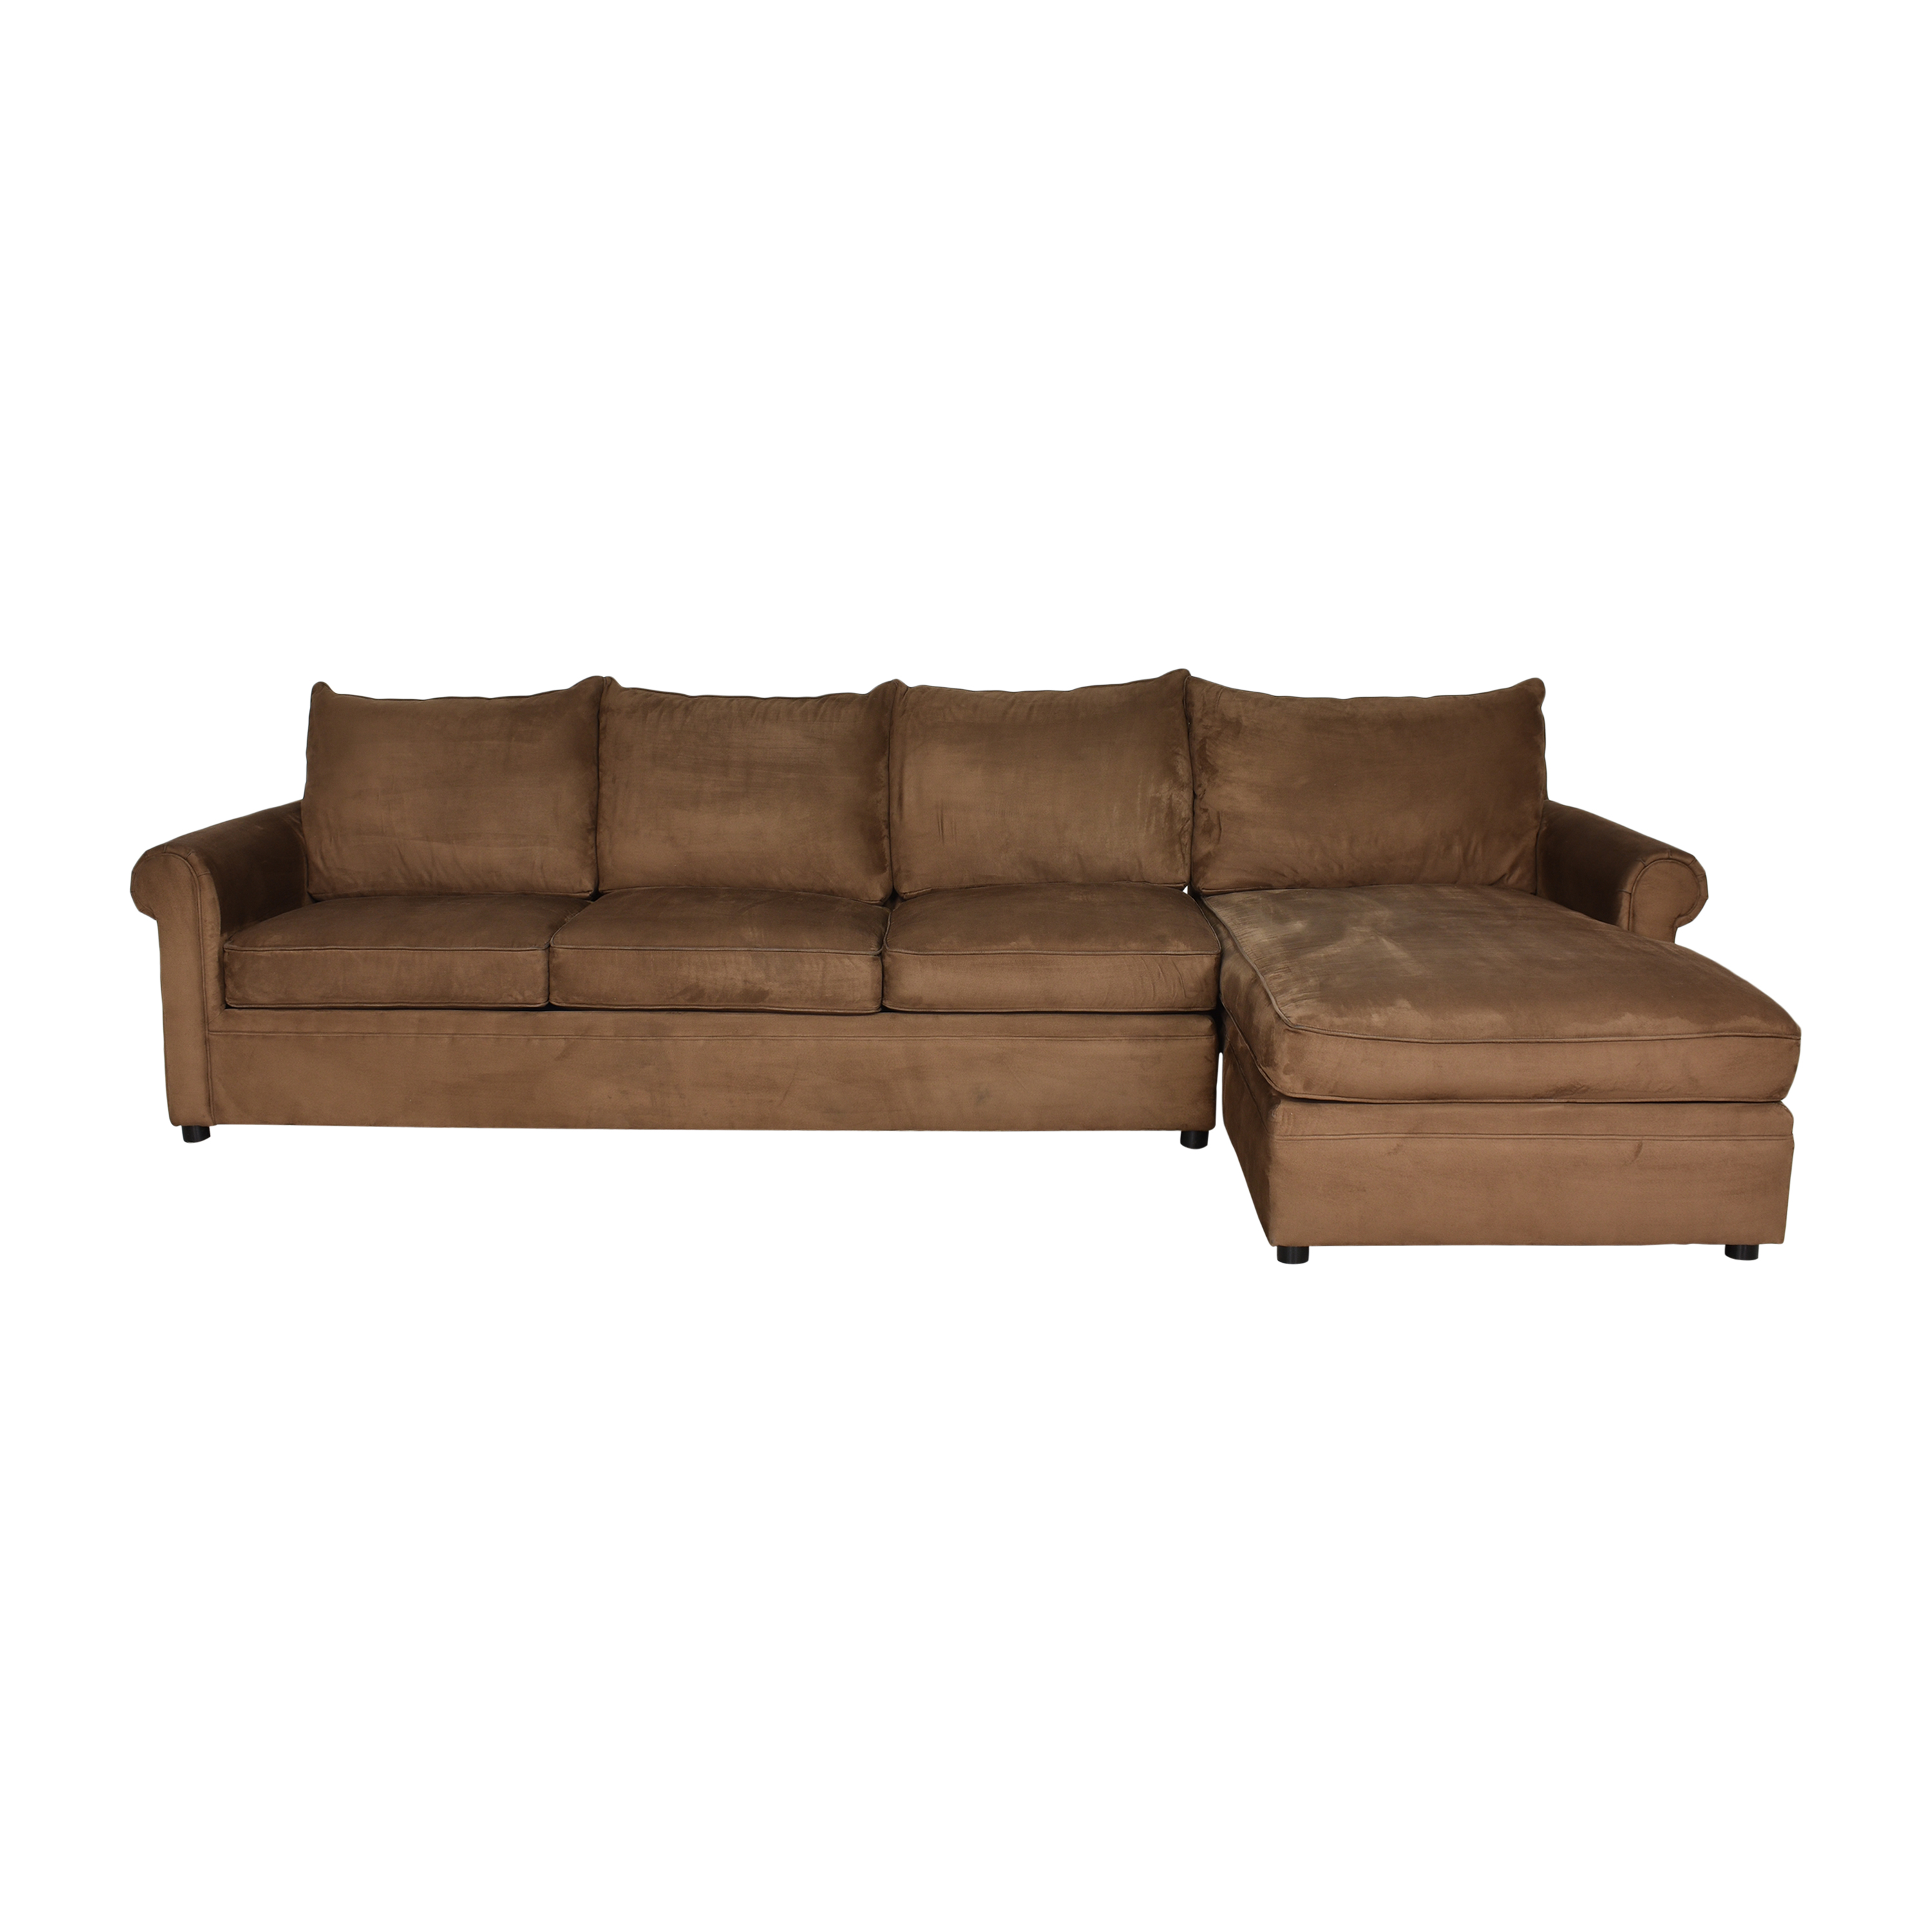 Domain Home Sectional Sleeper Sofa with Chaise Domain Home